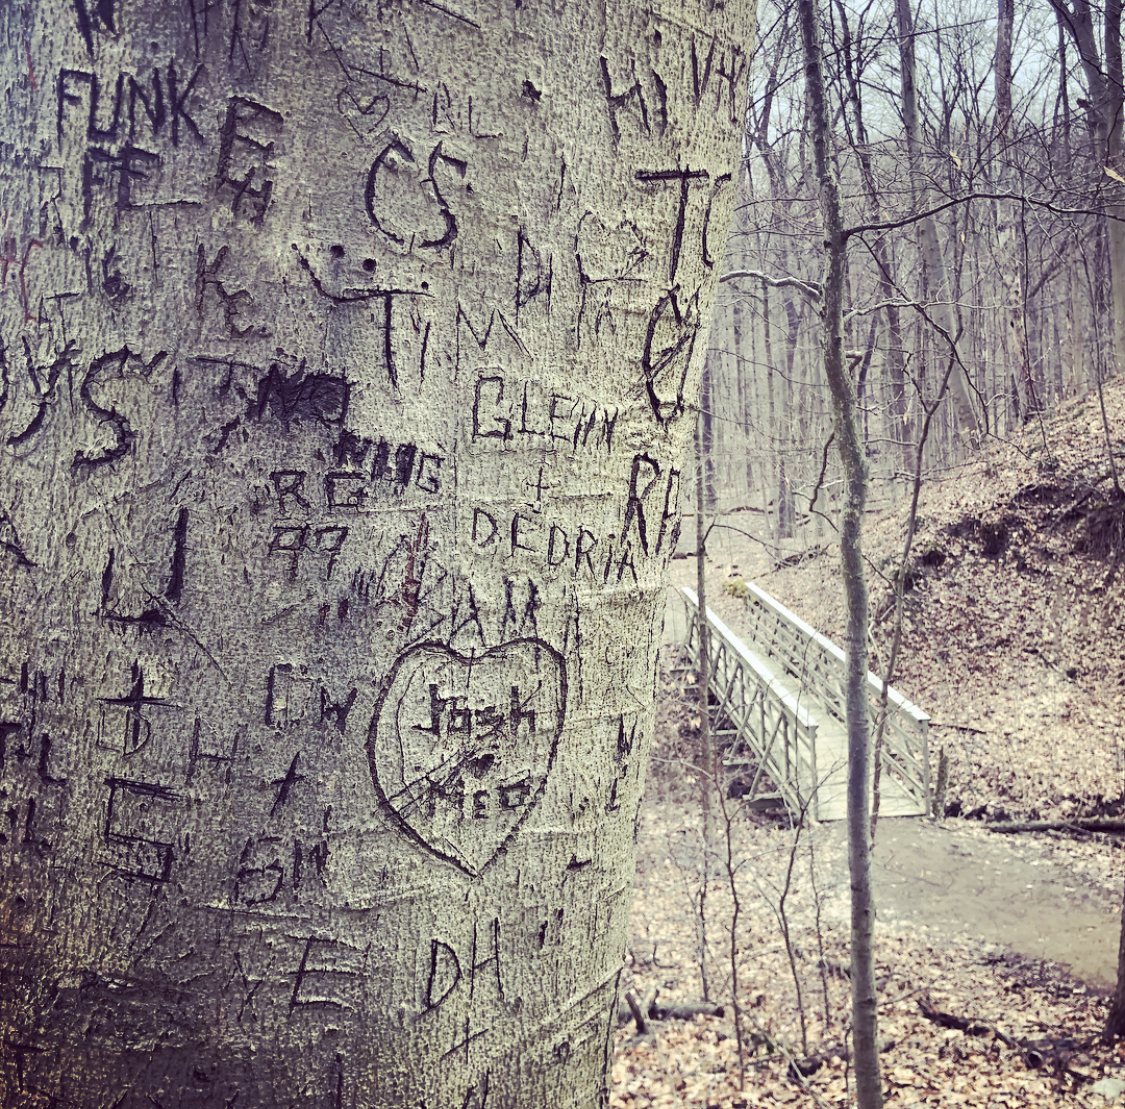 Cuyahoga Valley National Park, Stanford Trail (no trees were harmed in the making of this blog post)